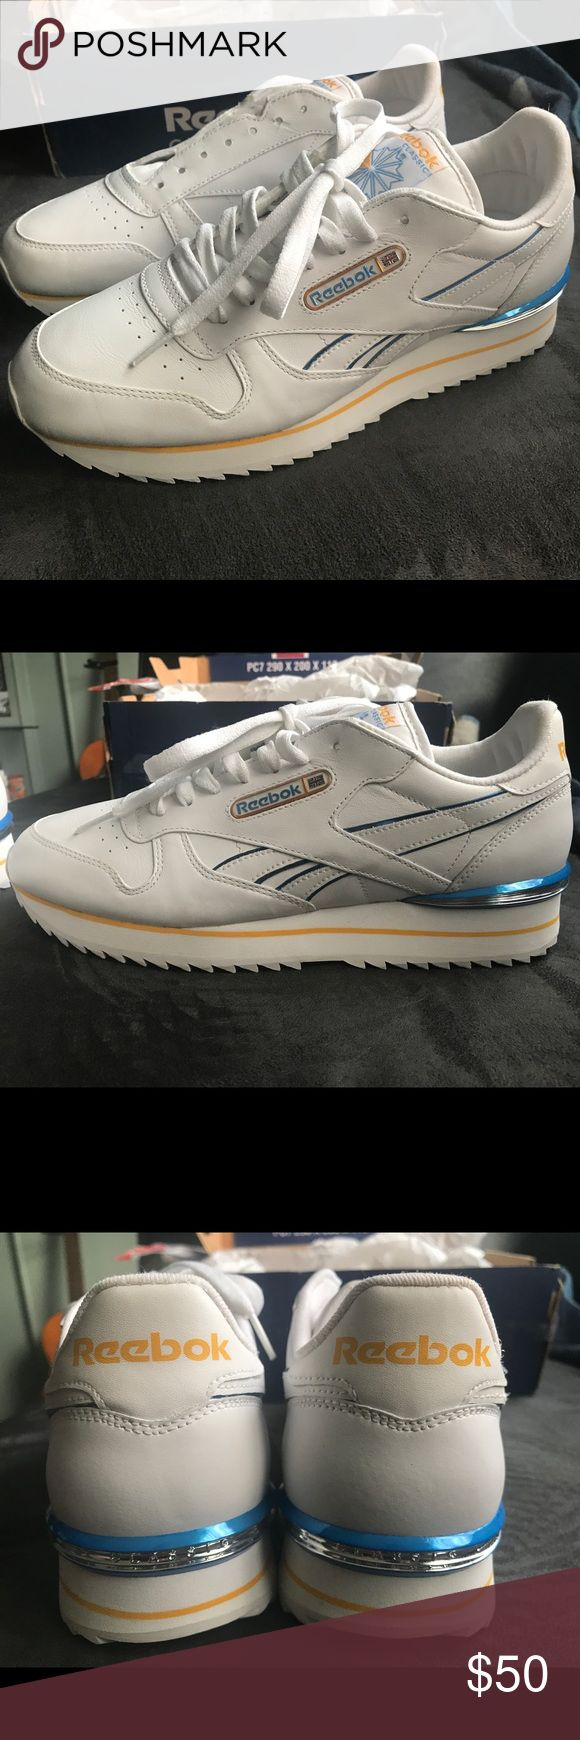 🔥Brand new Reebok Classics🔥 Brand new leather Reebok classics  The colors are white yellow blue and chrome great for you golden state fans 🏀 They're new in the original box (can double box if requested) clean pair of shoes just not my size  You can tell the nice quality from the pics Reebok Shoes